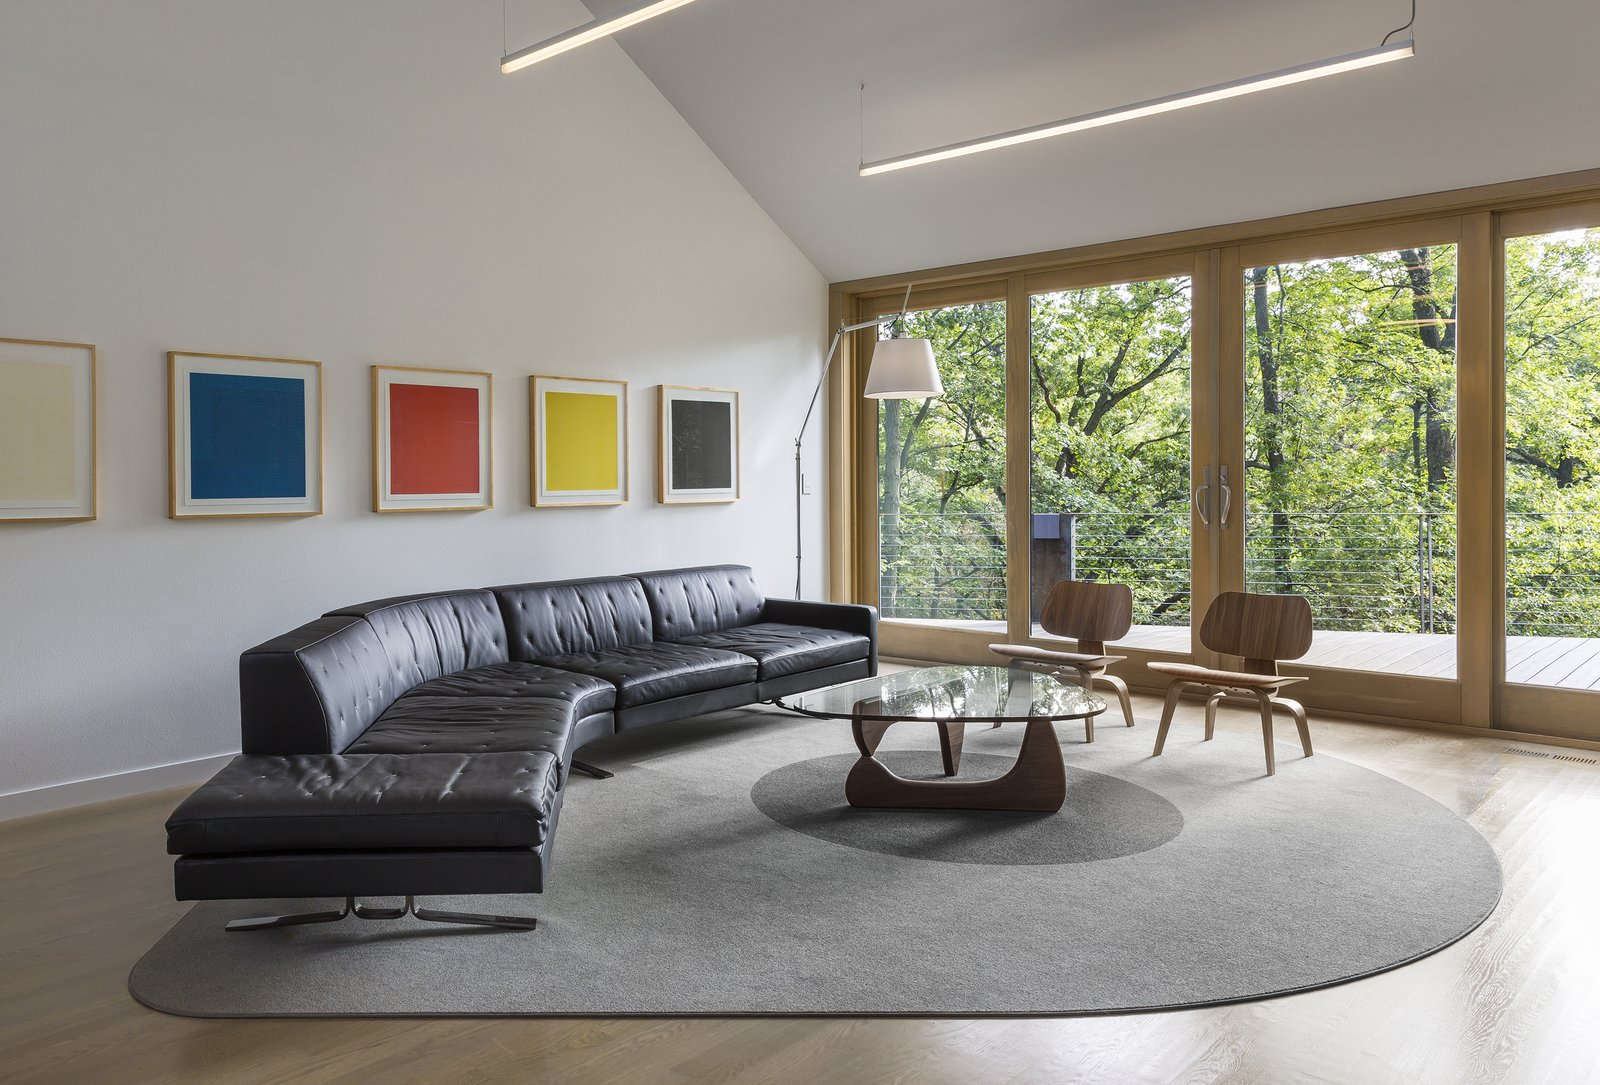 Living Room, Rug Floor, Sectional, Light Hardwood Floor, Chair, and Coffee Tables  3LP Residence by Substance Architecture